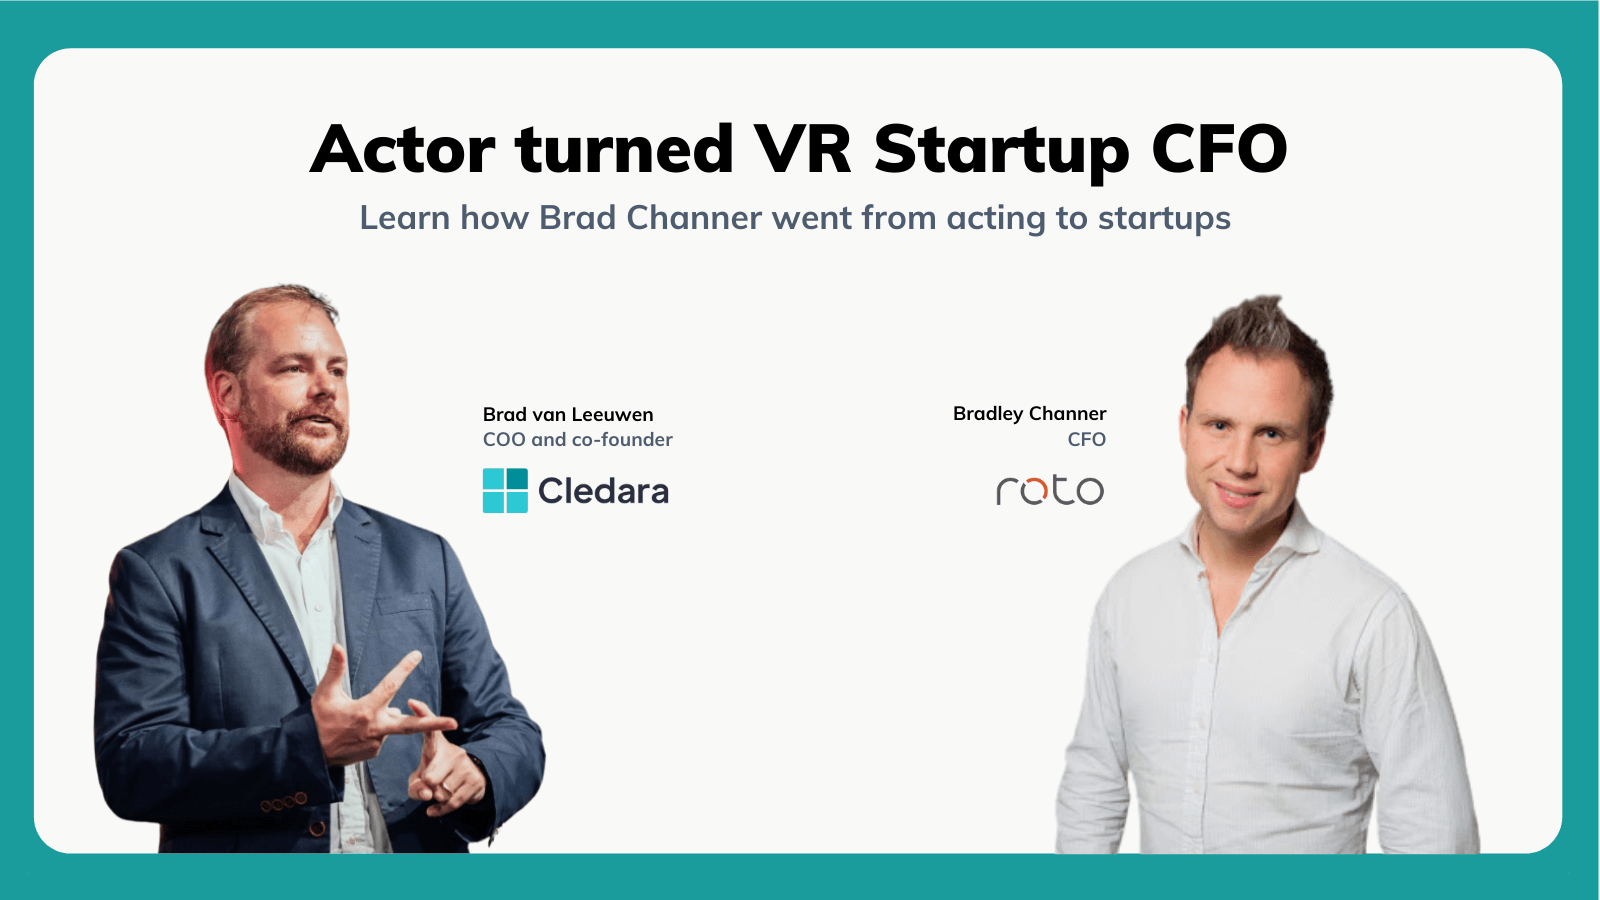 Meet the Actor That Pivoted Into CFO of a Hot VR Startup